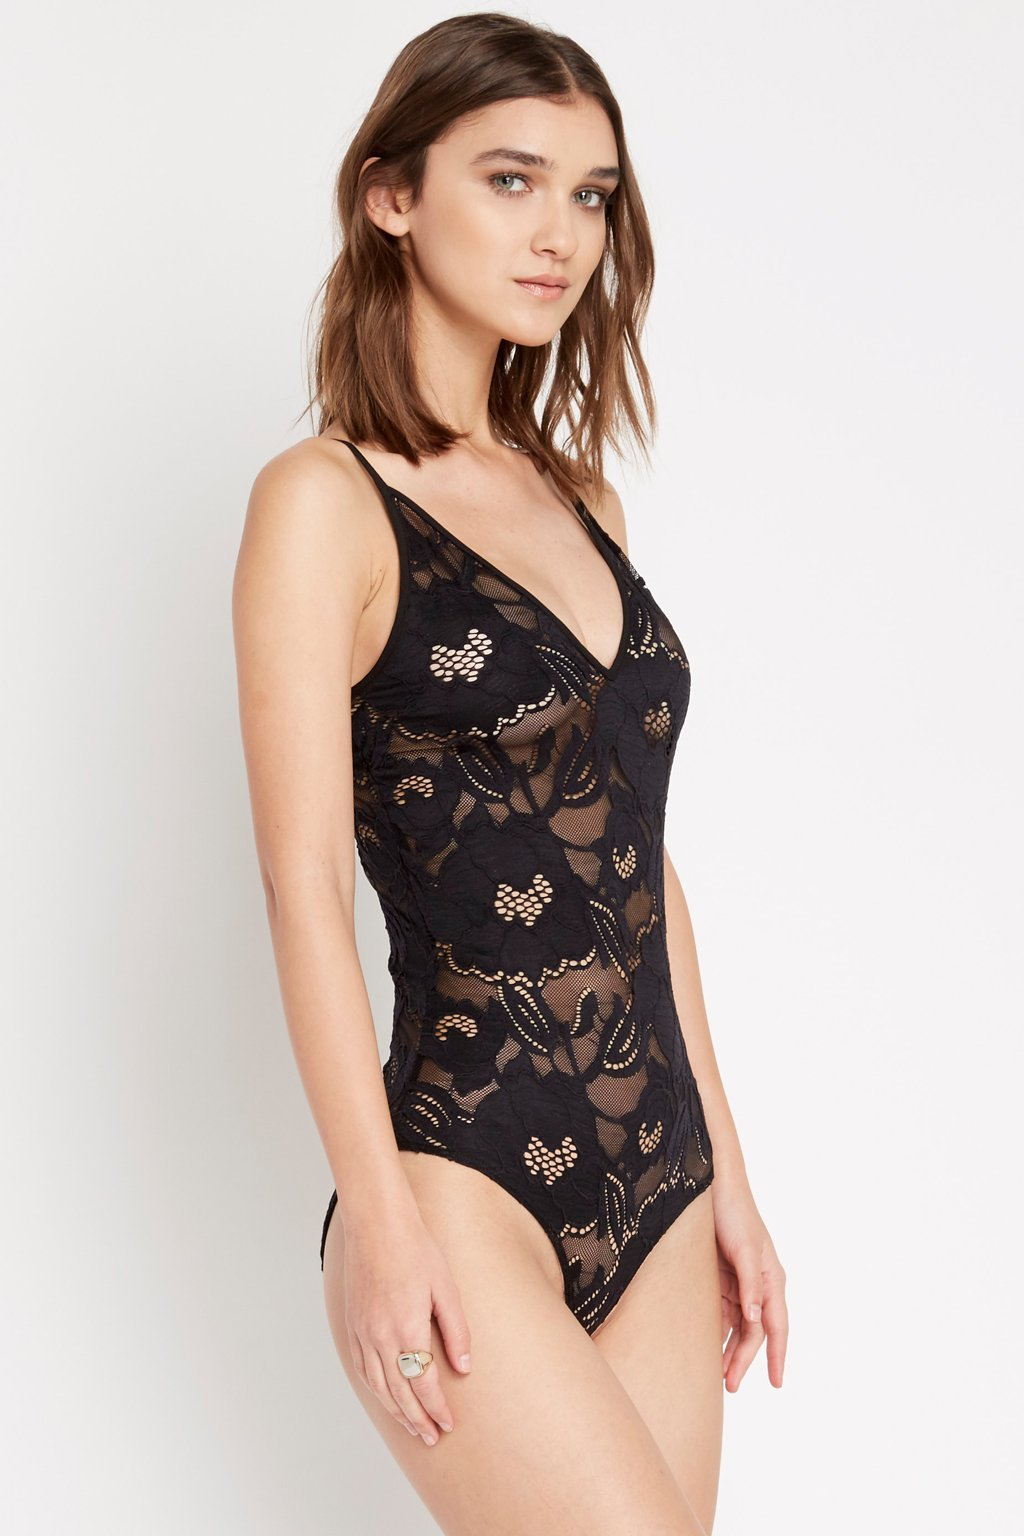 Poshsquare Tops Black Lace Consumption Bodysuit